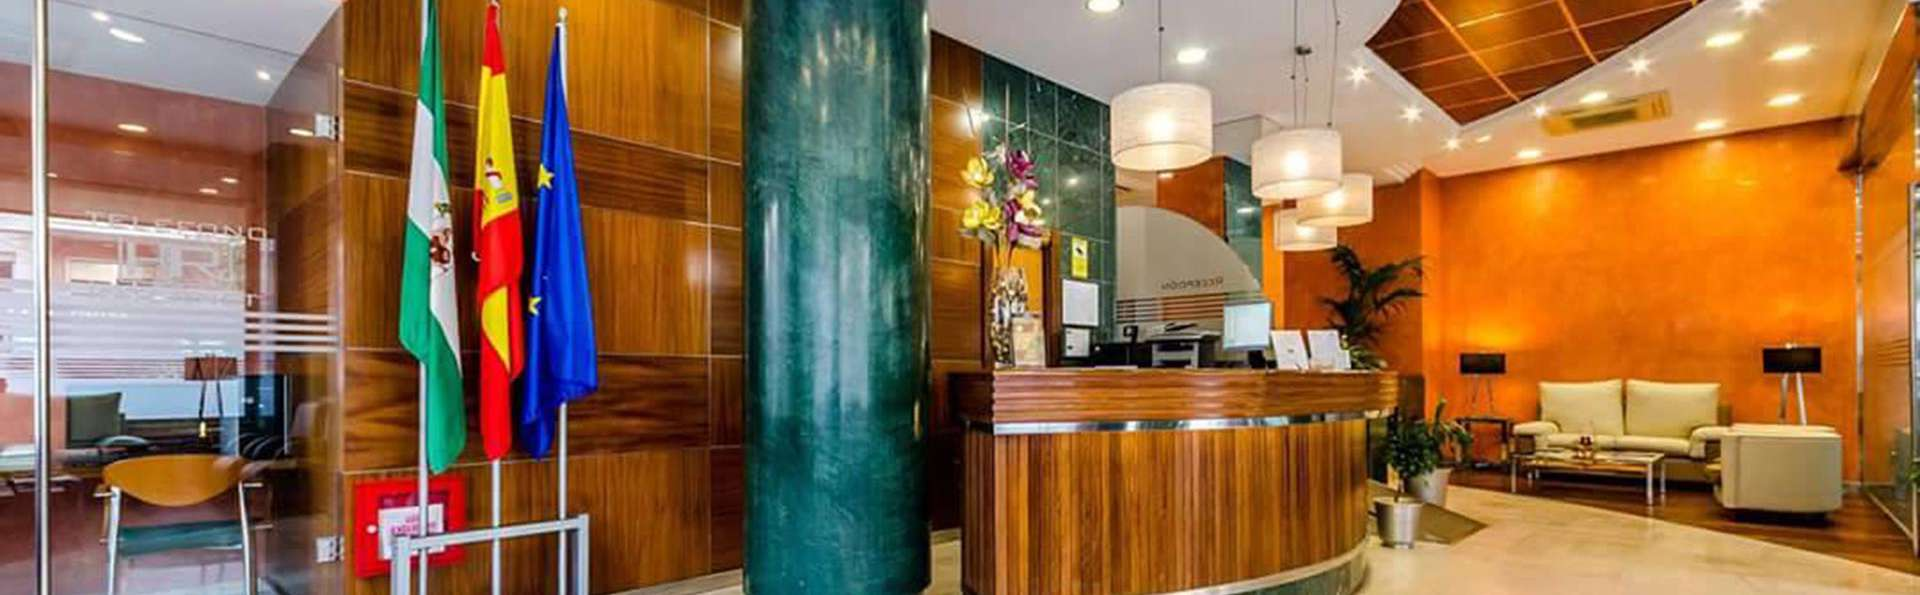 Hotel Regio Cádiz - EDIT_reception.jpg